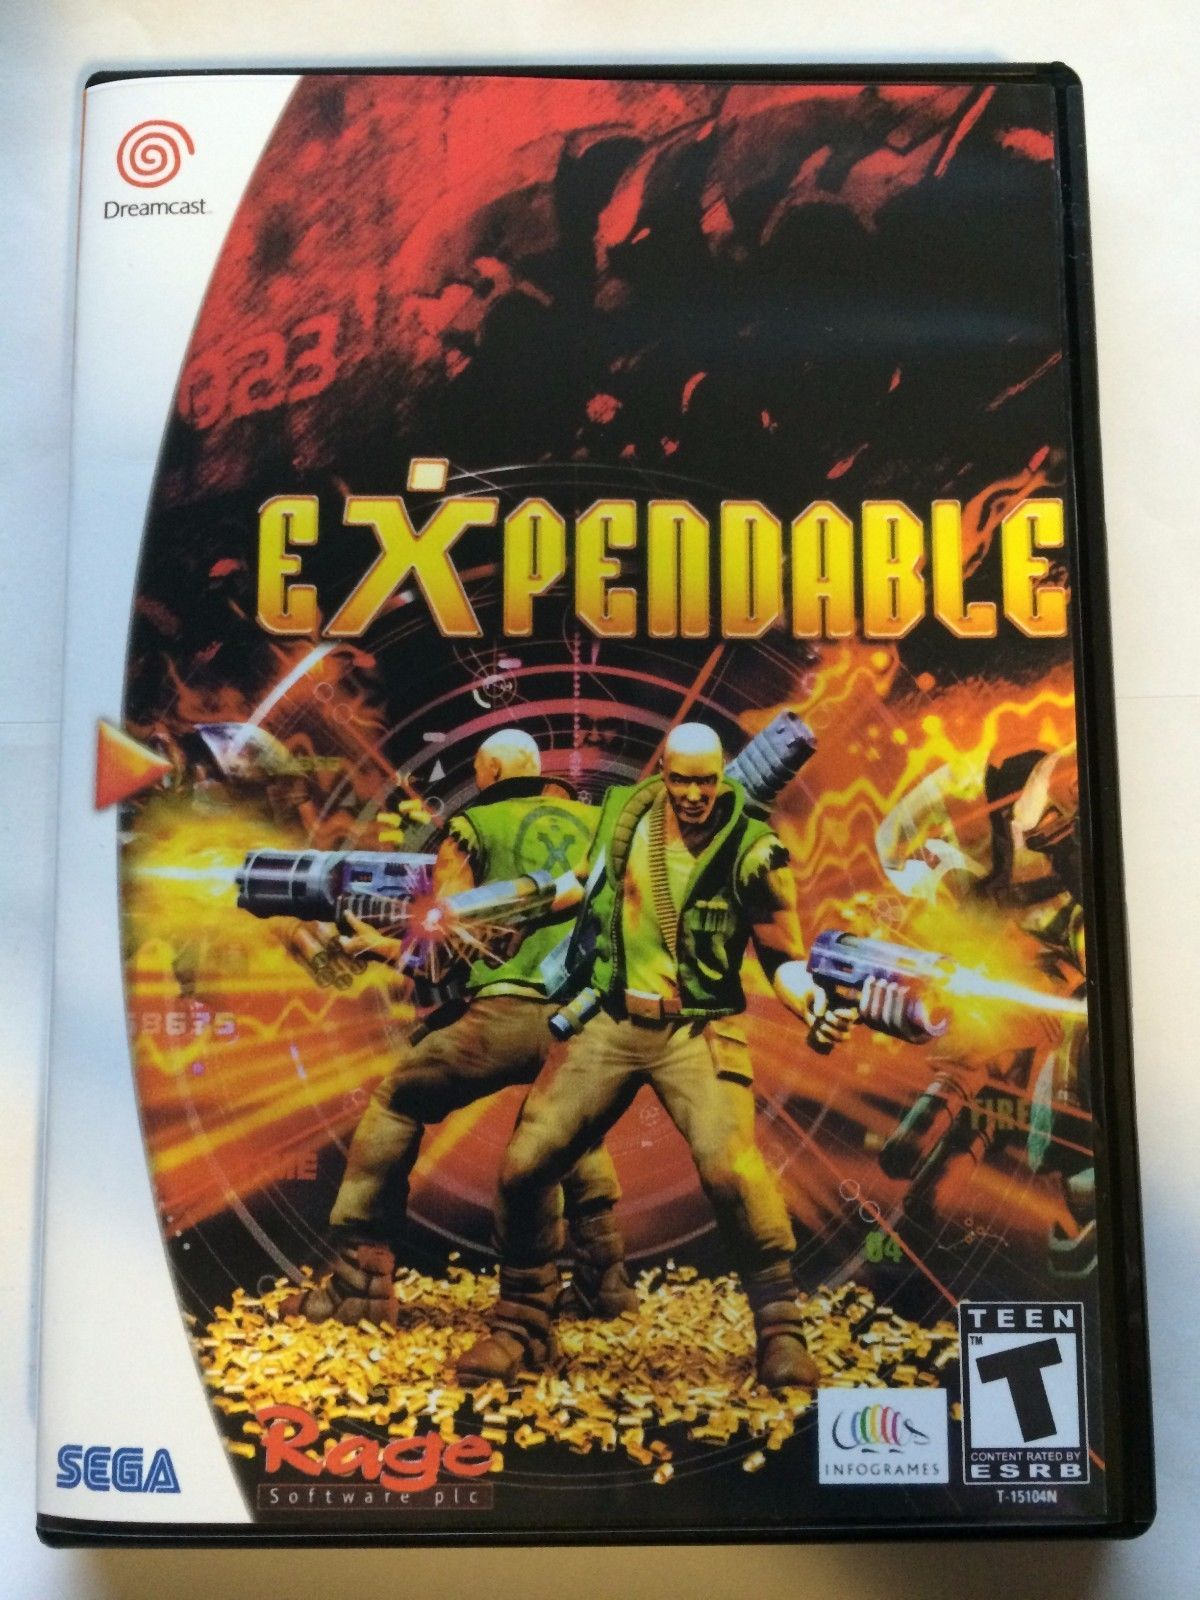 Expendable - Sega Dreamcast - Replacement Case - No Game